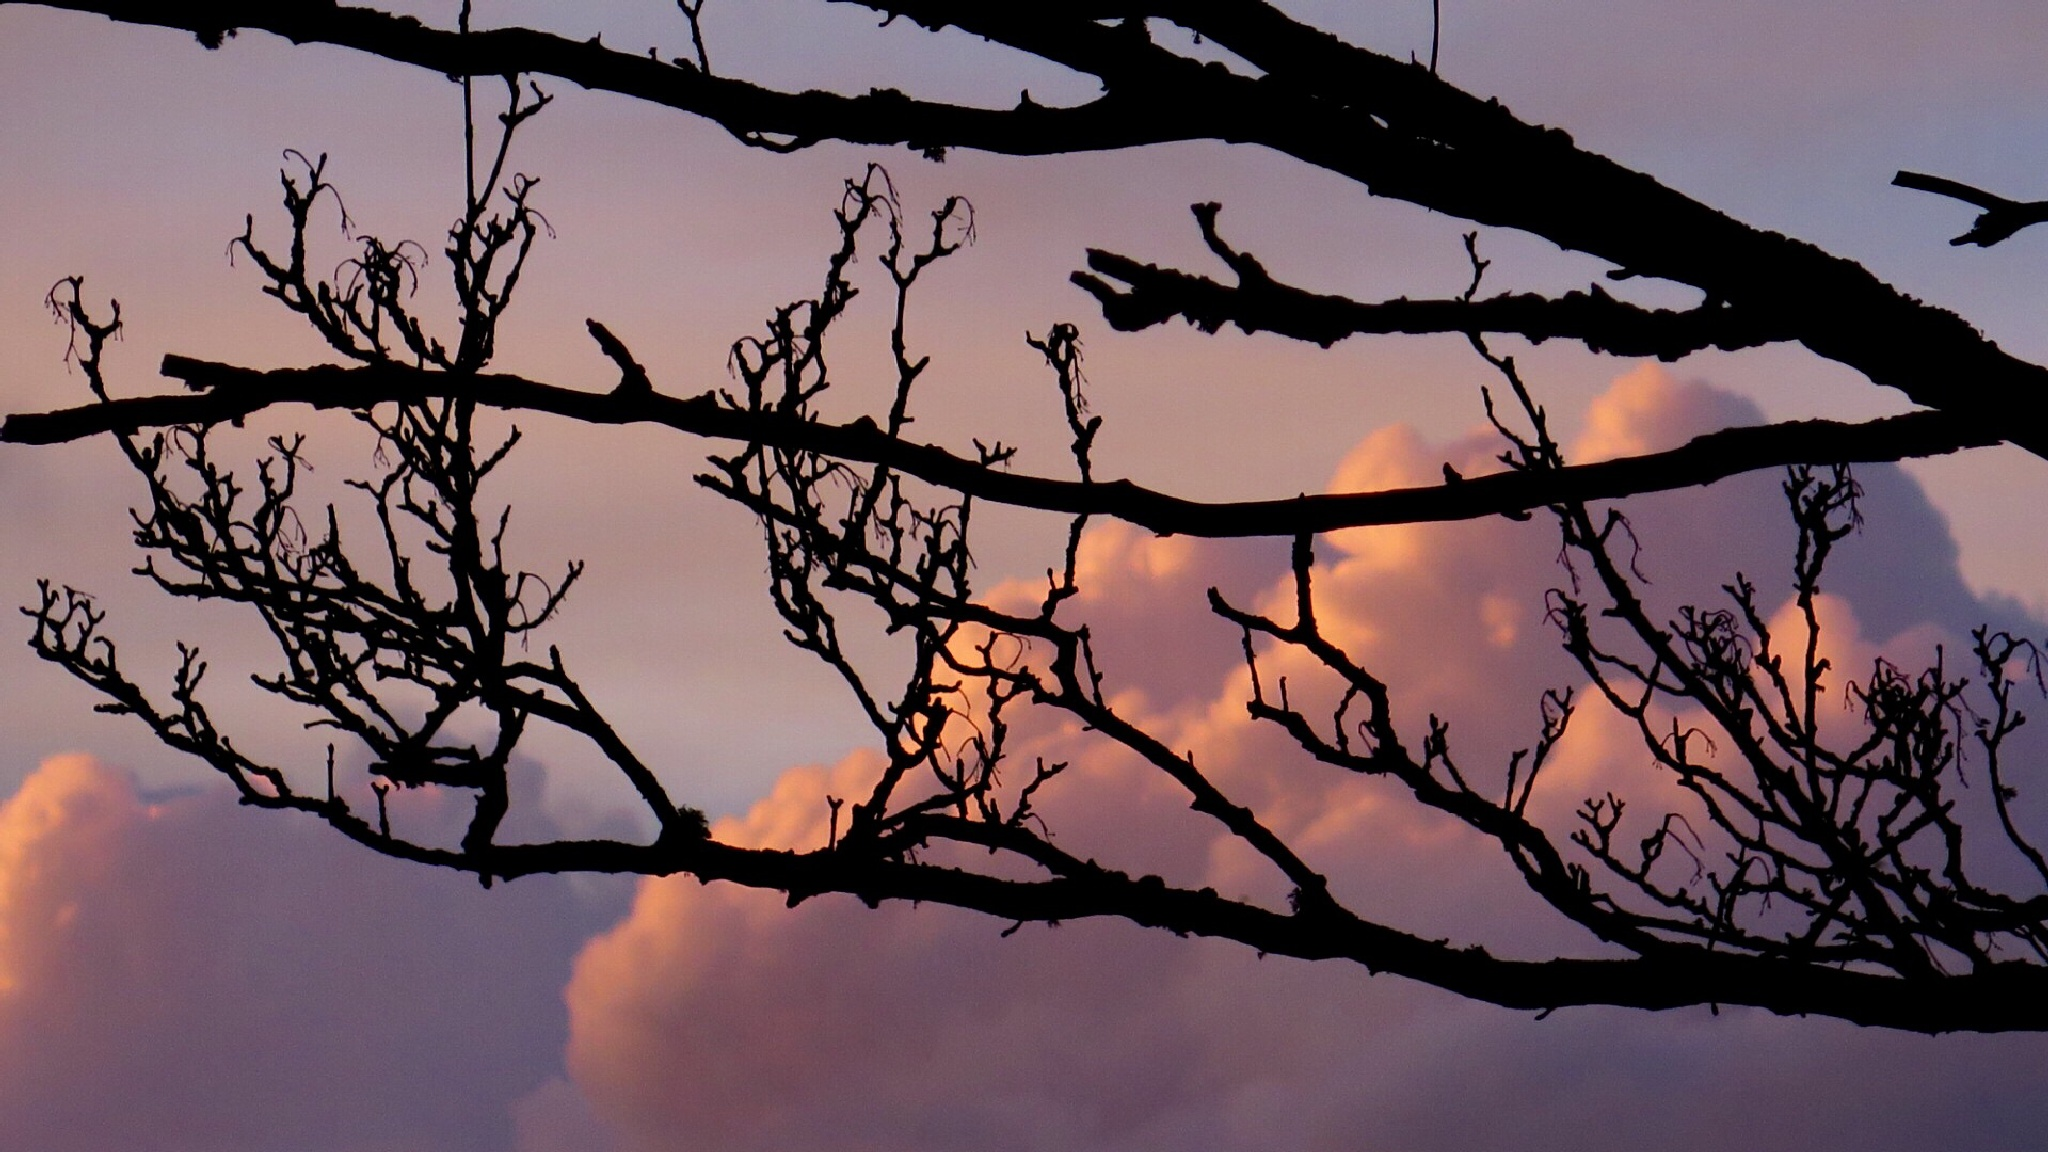 Branch out with clouds behind you by Terry Reynolds